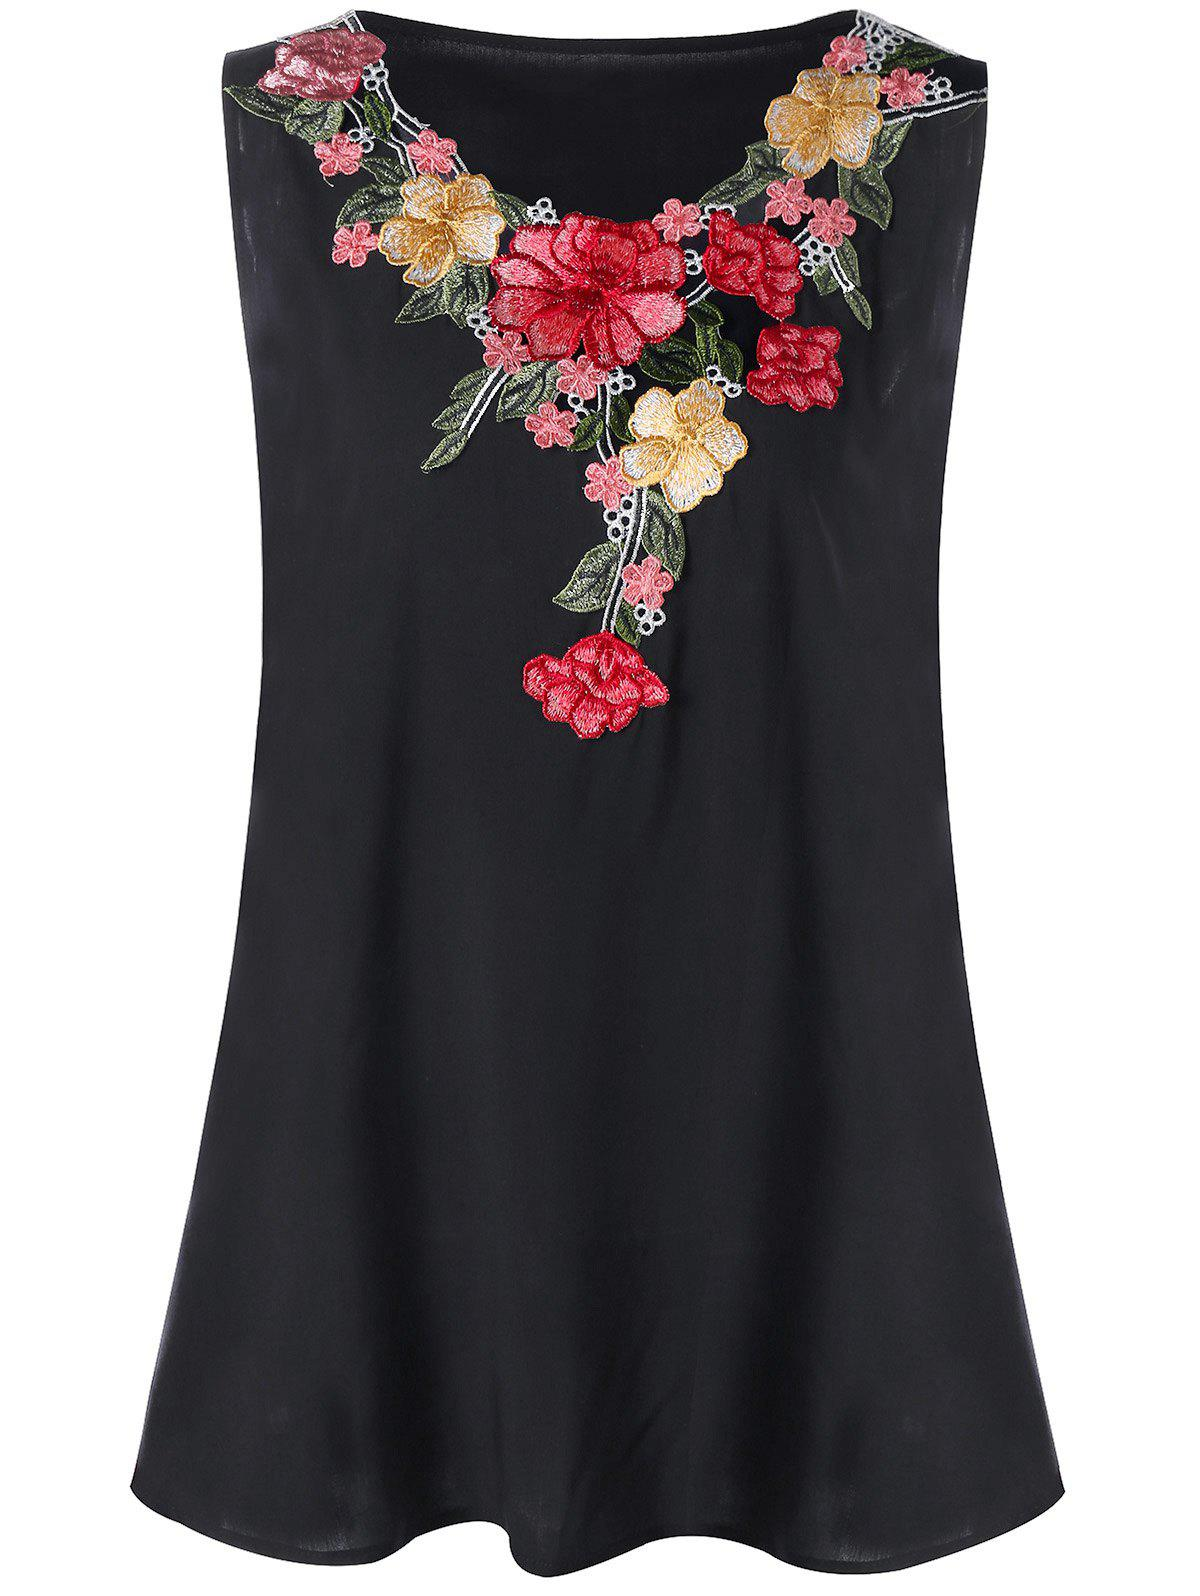 Plus Size Floral Embroidery Tank Top - BLACK 5XL